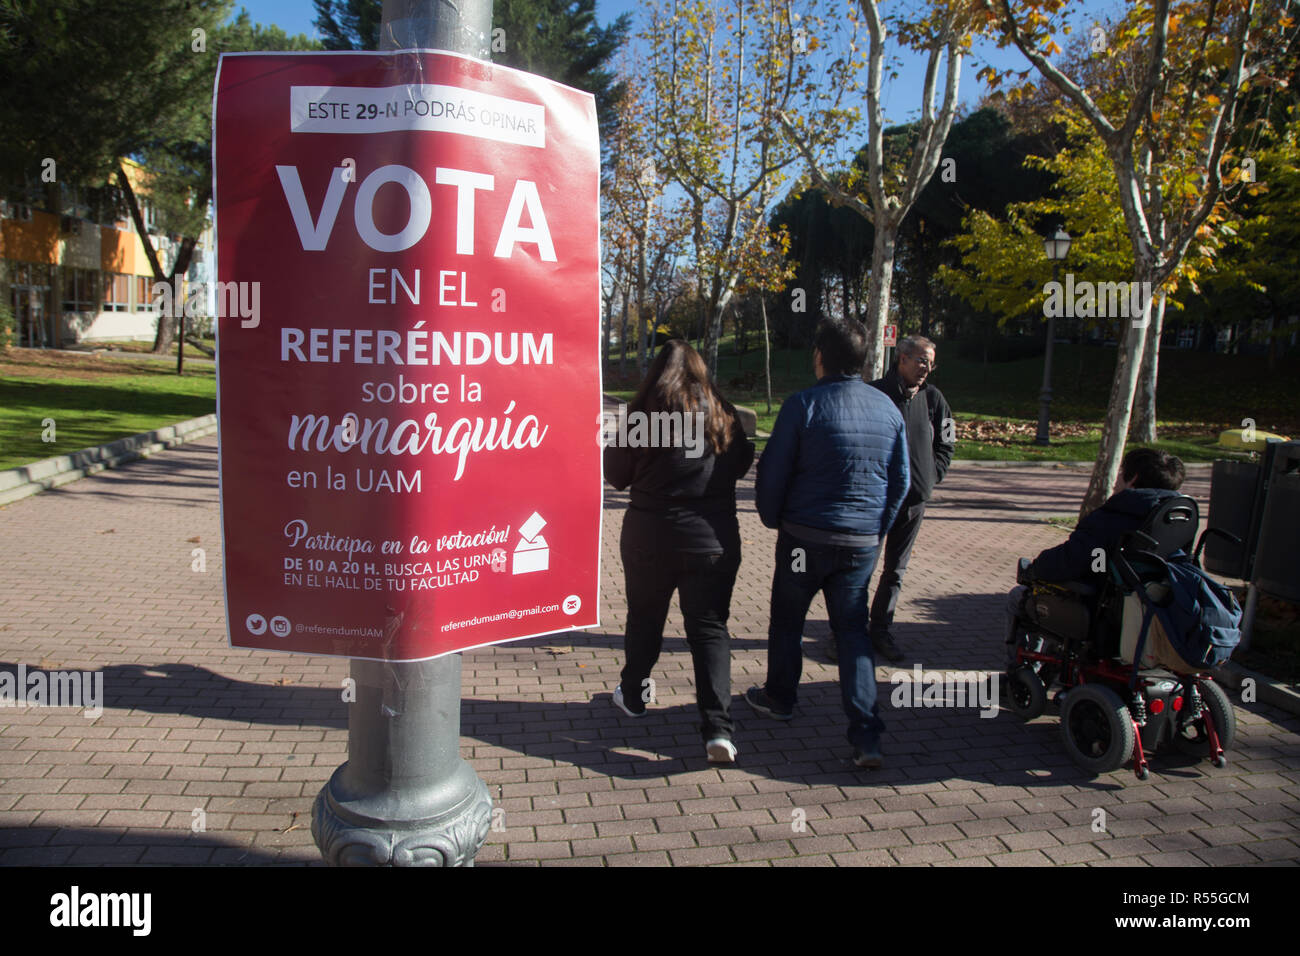 Placard seen announcing the voting outside of the Autonomous University of Madrid. Volunteers from the Autonomous University of Madrid initiated the consultative referendum to decide if the thousands of students, professors and workers of the university want a legitimate vote to decide the form of the Spanish state and ask if they prefer monarchy or republic. This vote would mark the first voting date that would be extended to other Spanish universities and Spanish cities. - Stock Image